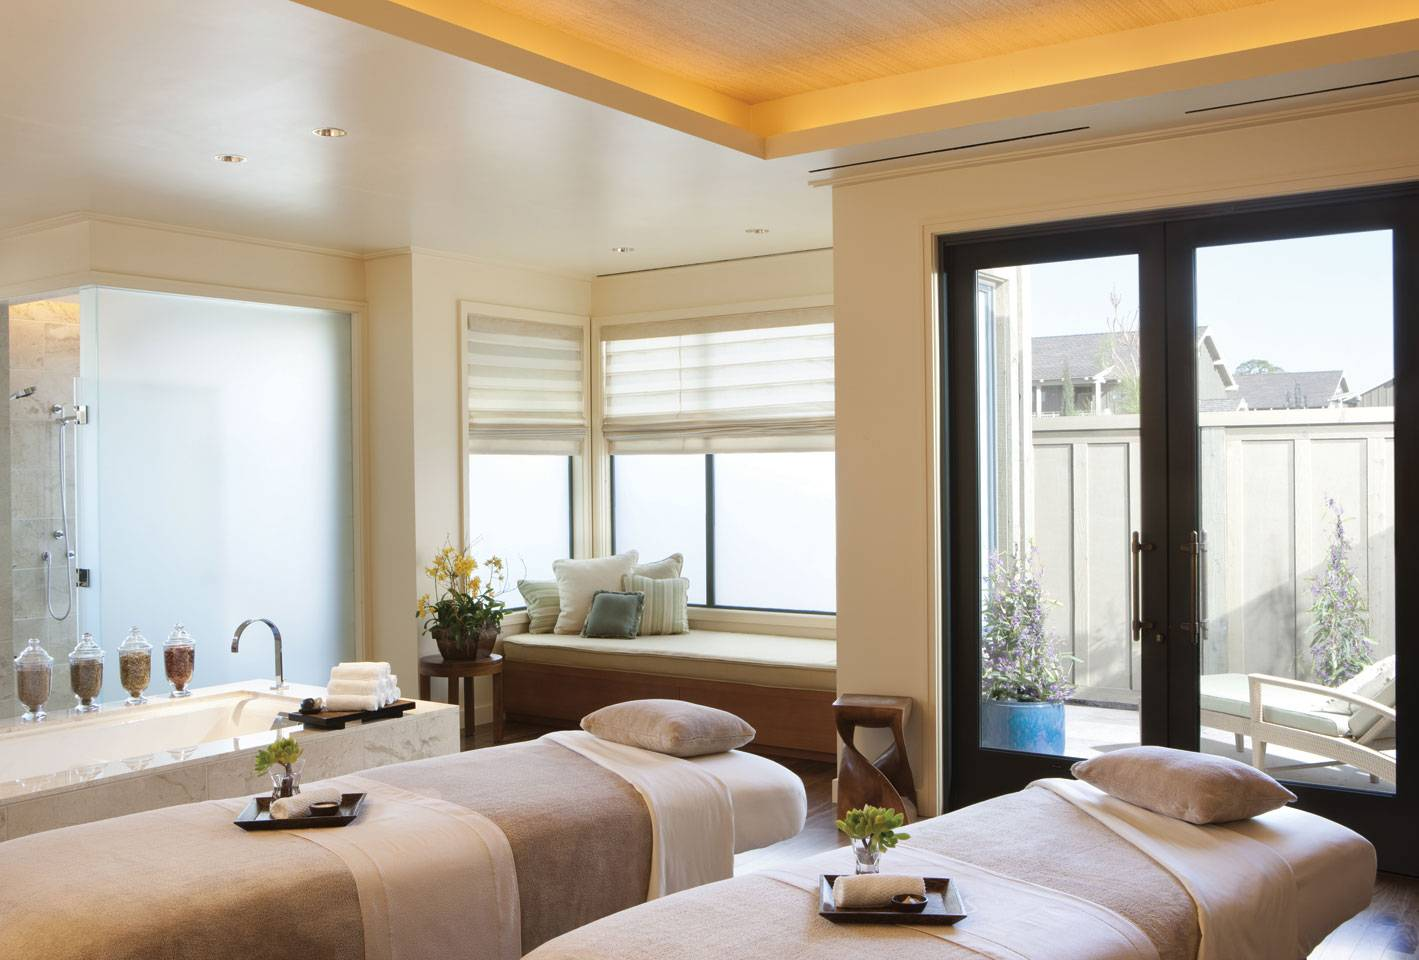 Sense-Spa-at-the-Rosewood-Sand-Hill